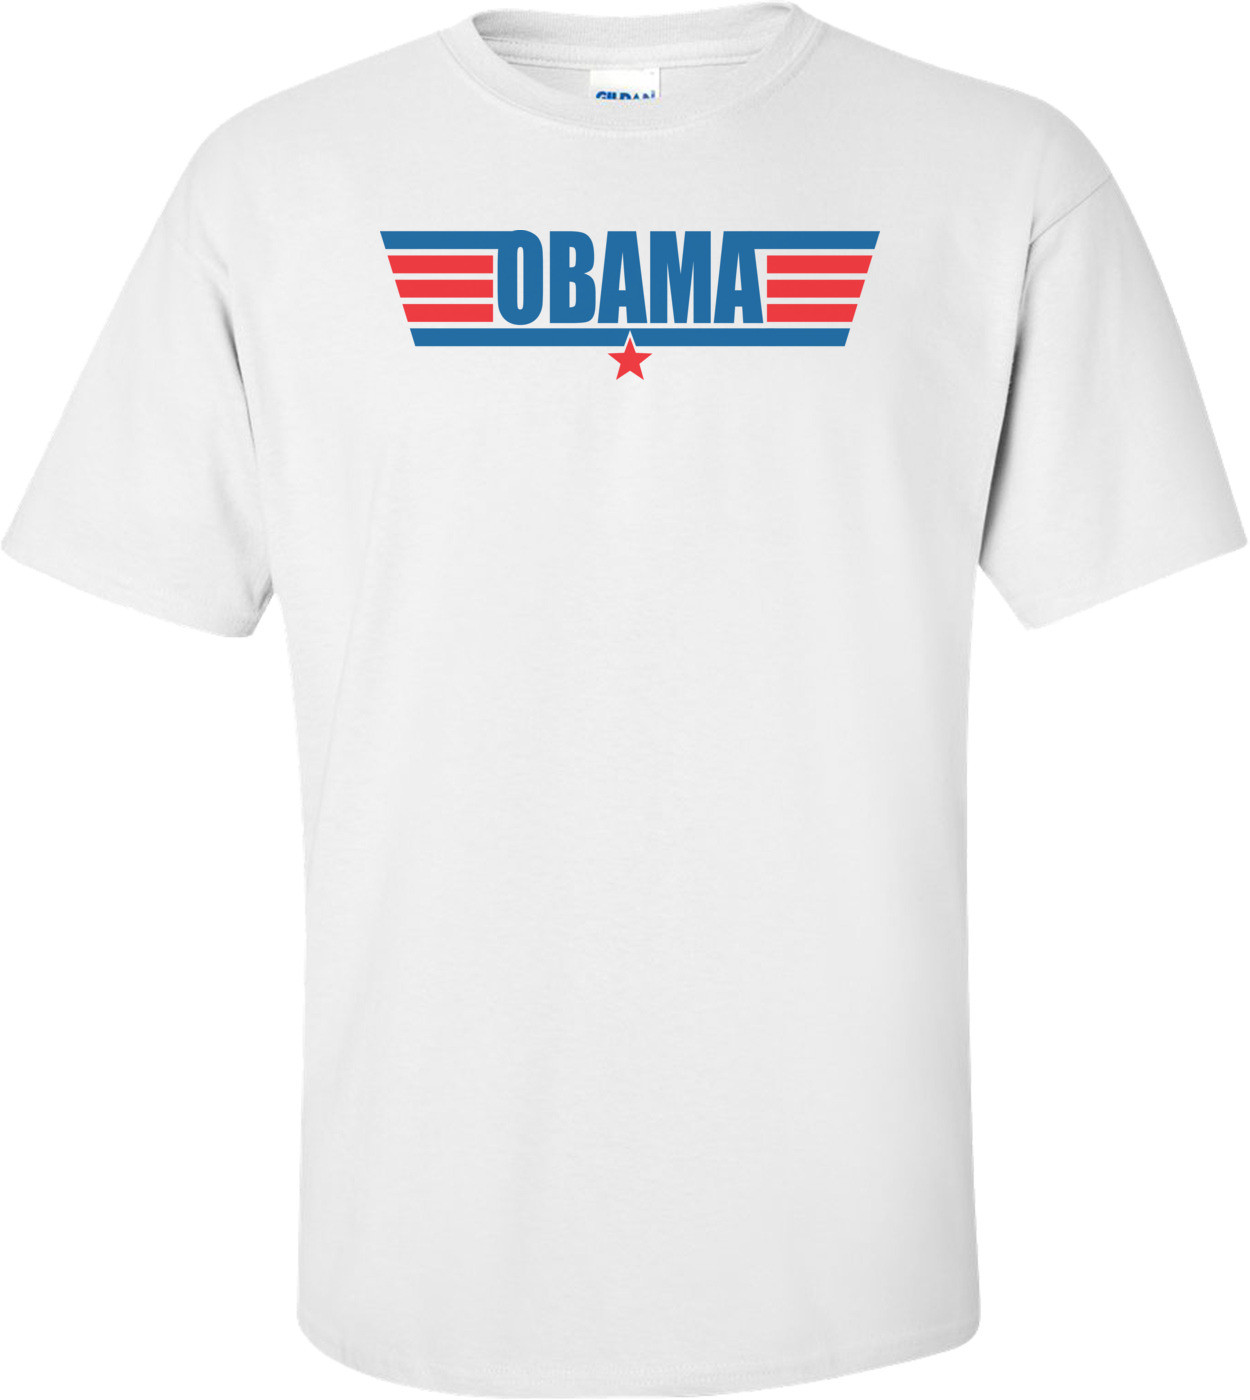 Top Gun Obama T-shirt